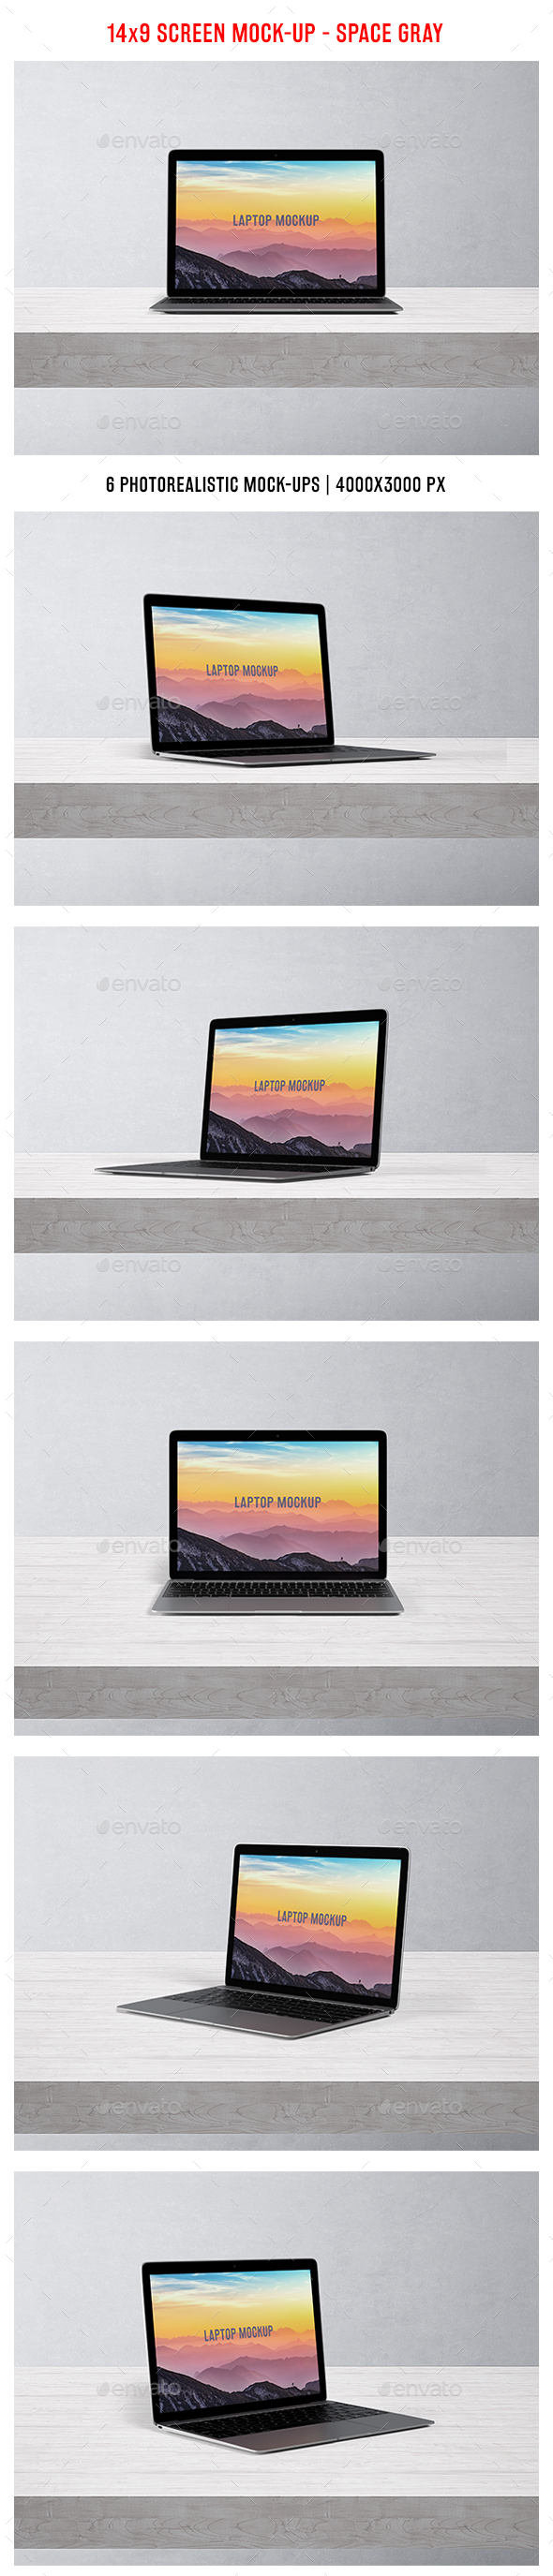 Laptop Mockup - Space gray - Laptop Displays